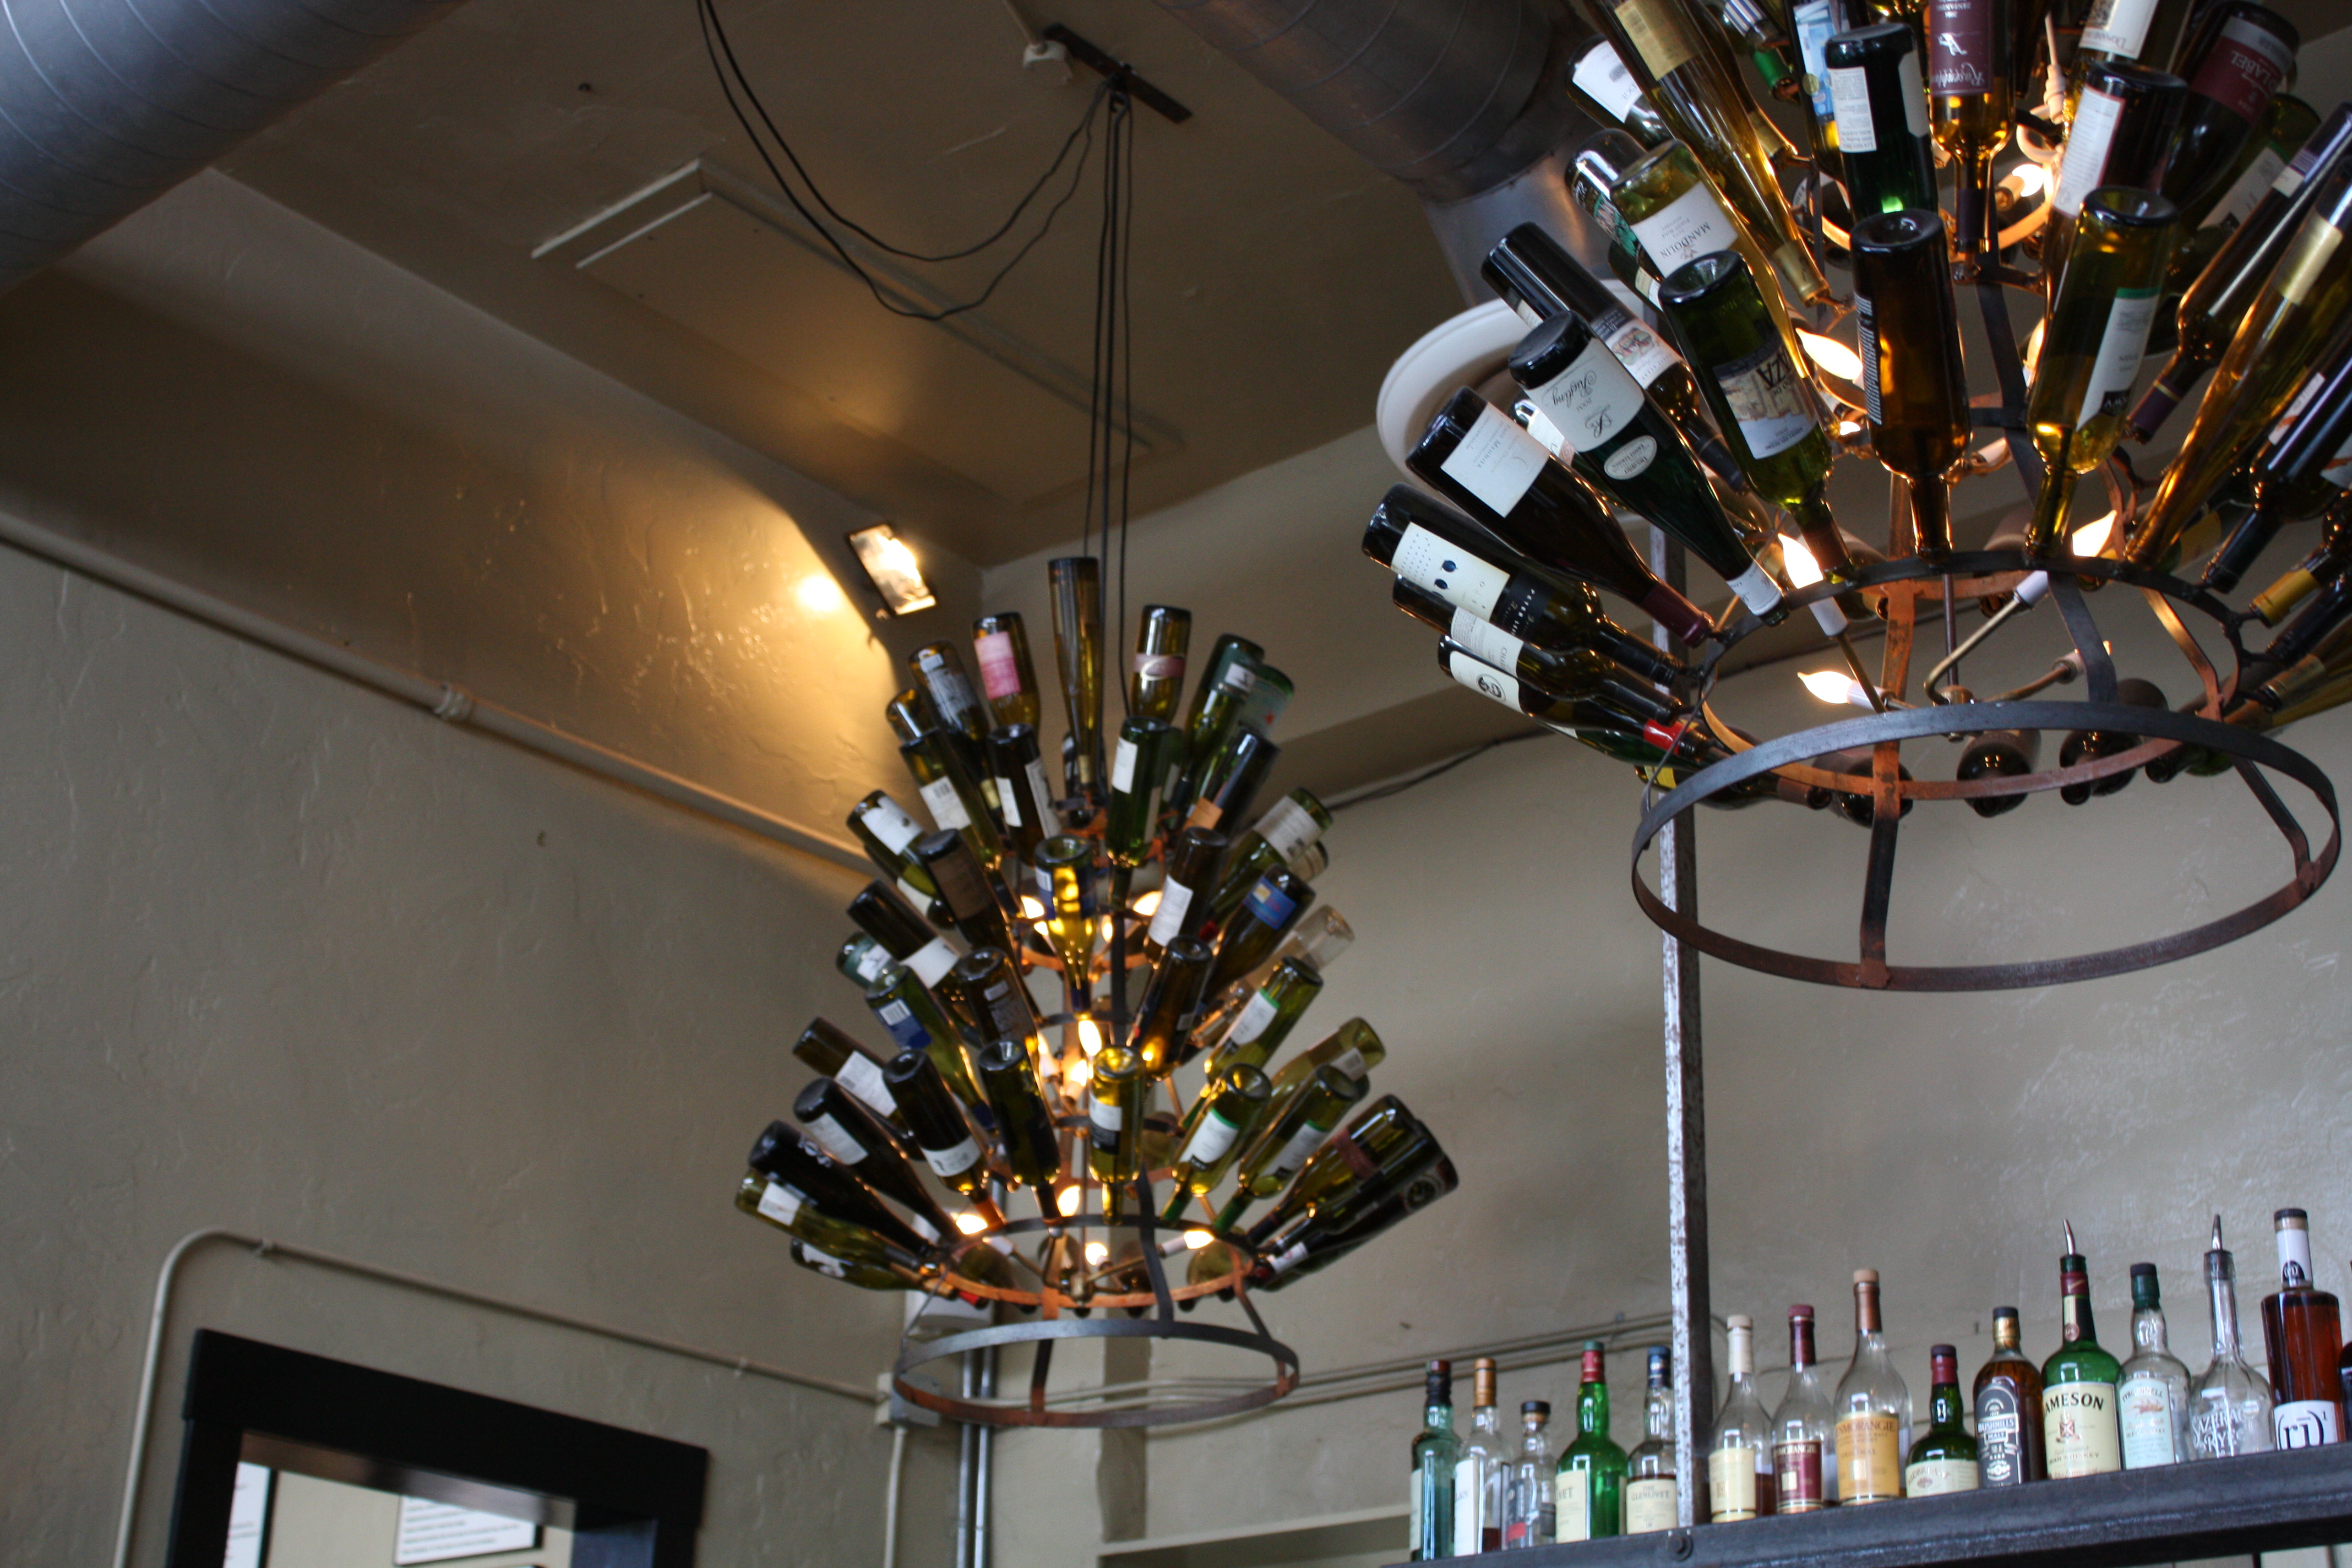 Diy how to recycle wine bottle into chandelier homesfeed playful refined wine bottle chandelier idea with round tiered iron frame beneath white ceiling with gray mozeypictures Images